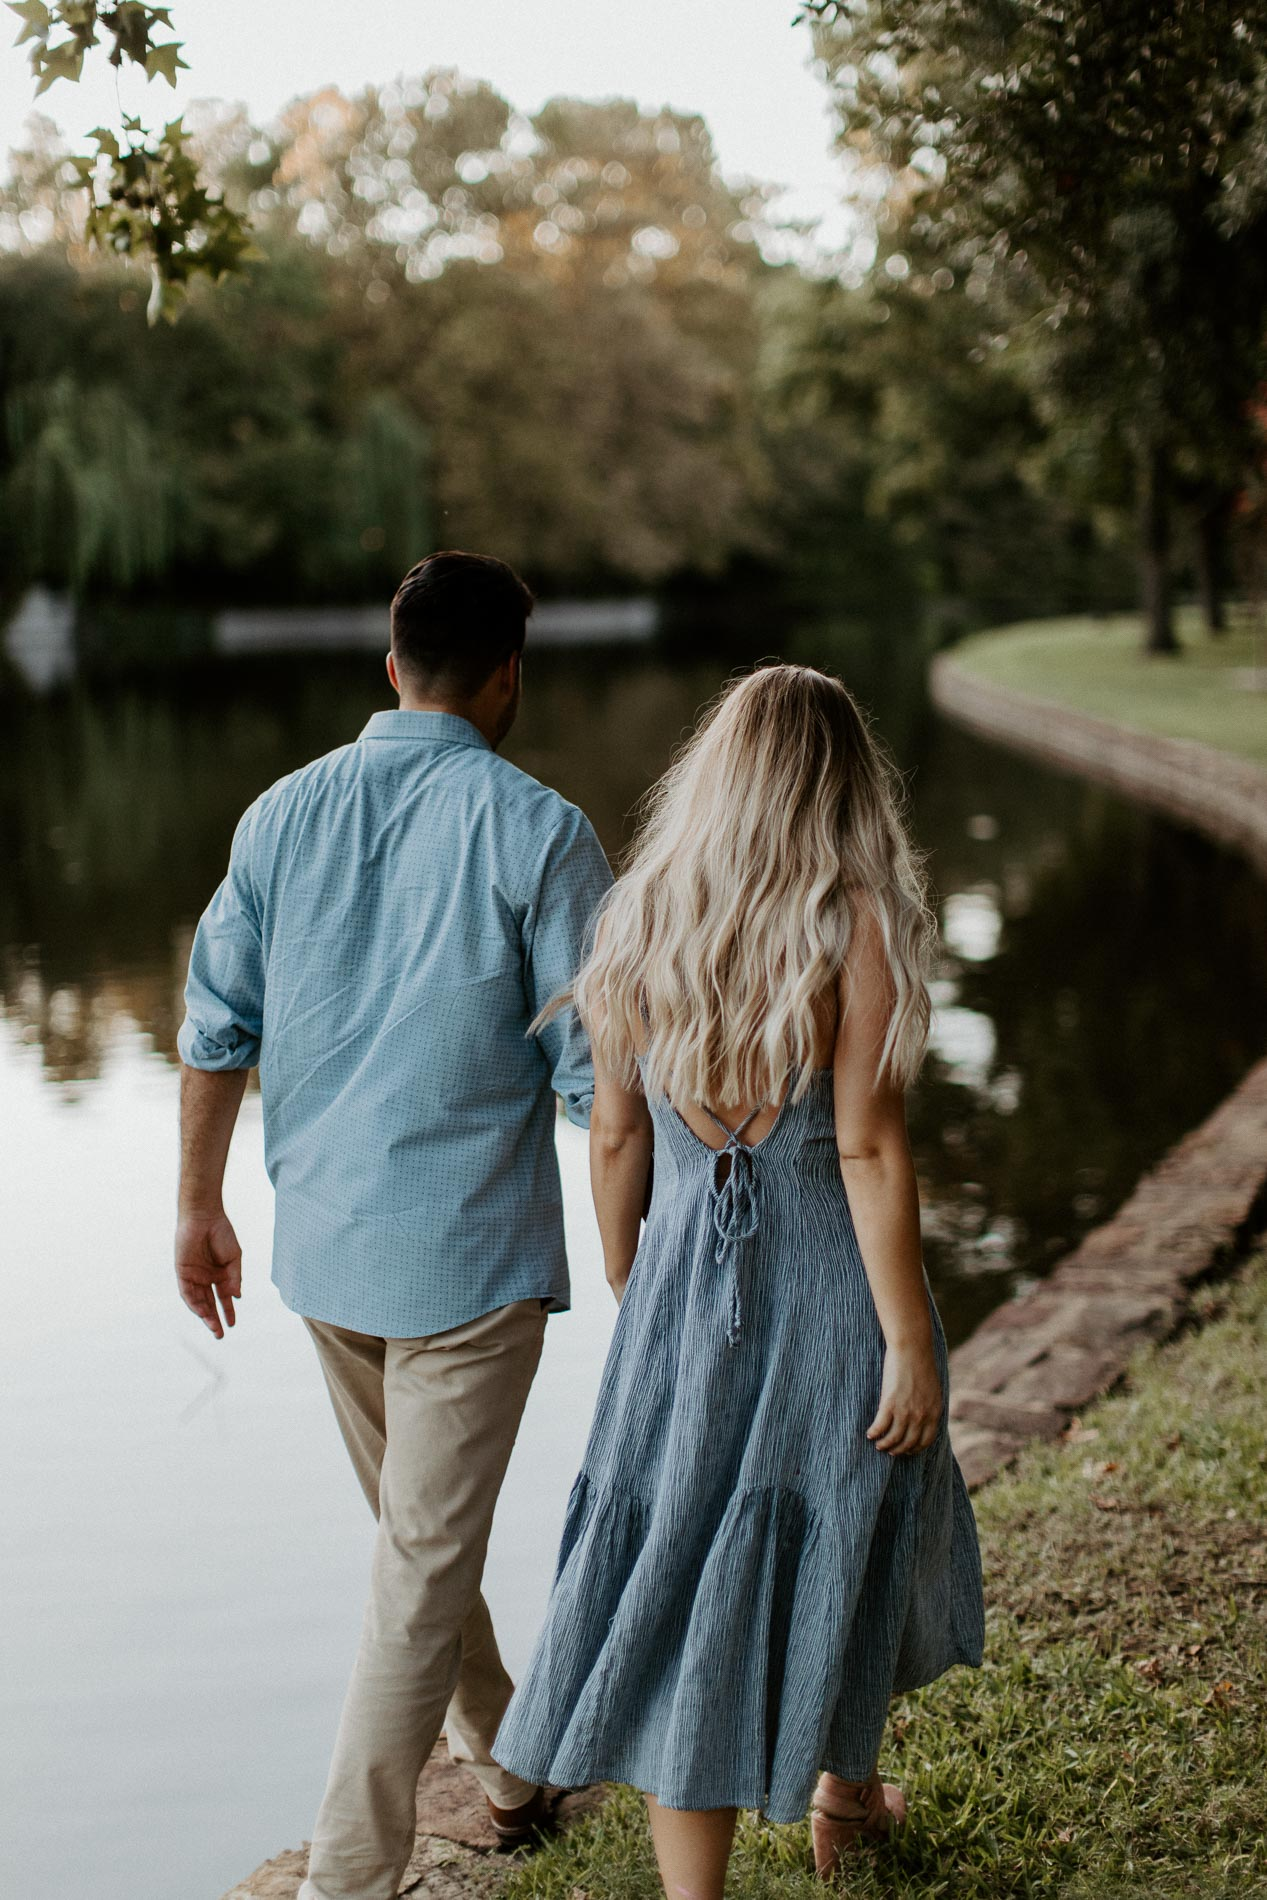 Engagement session location was beautiful as couple was talking